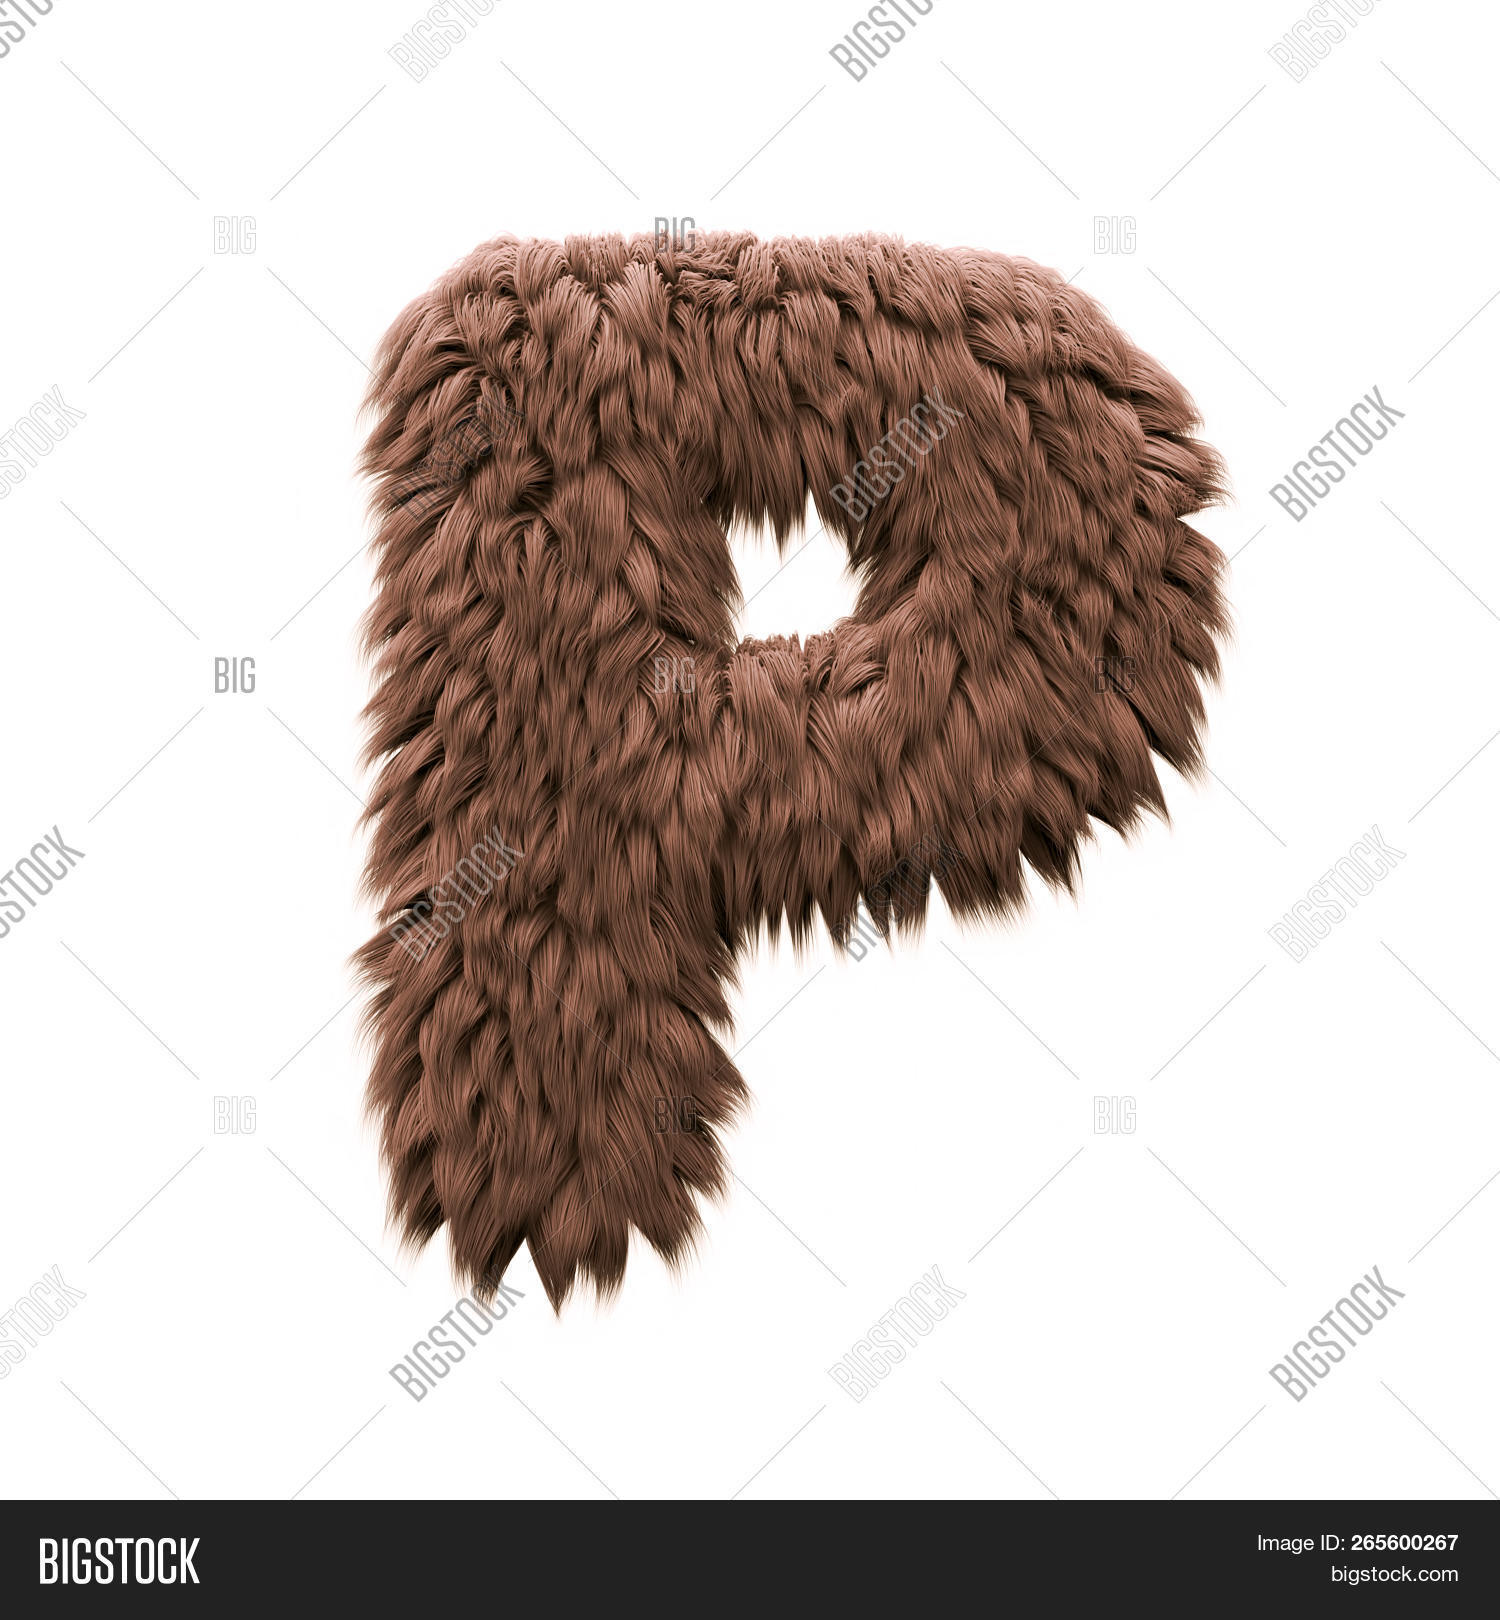 Monster Letter P  Image & Photo (Free Trial) | Bigstock